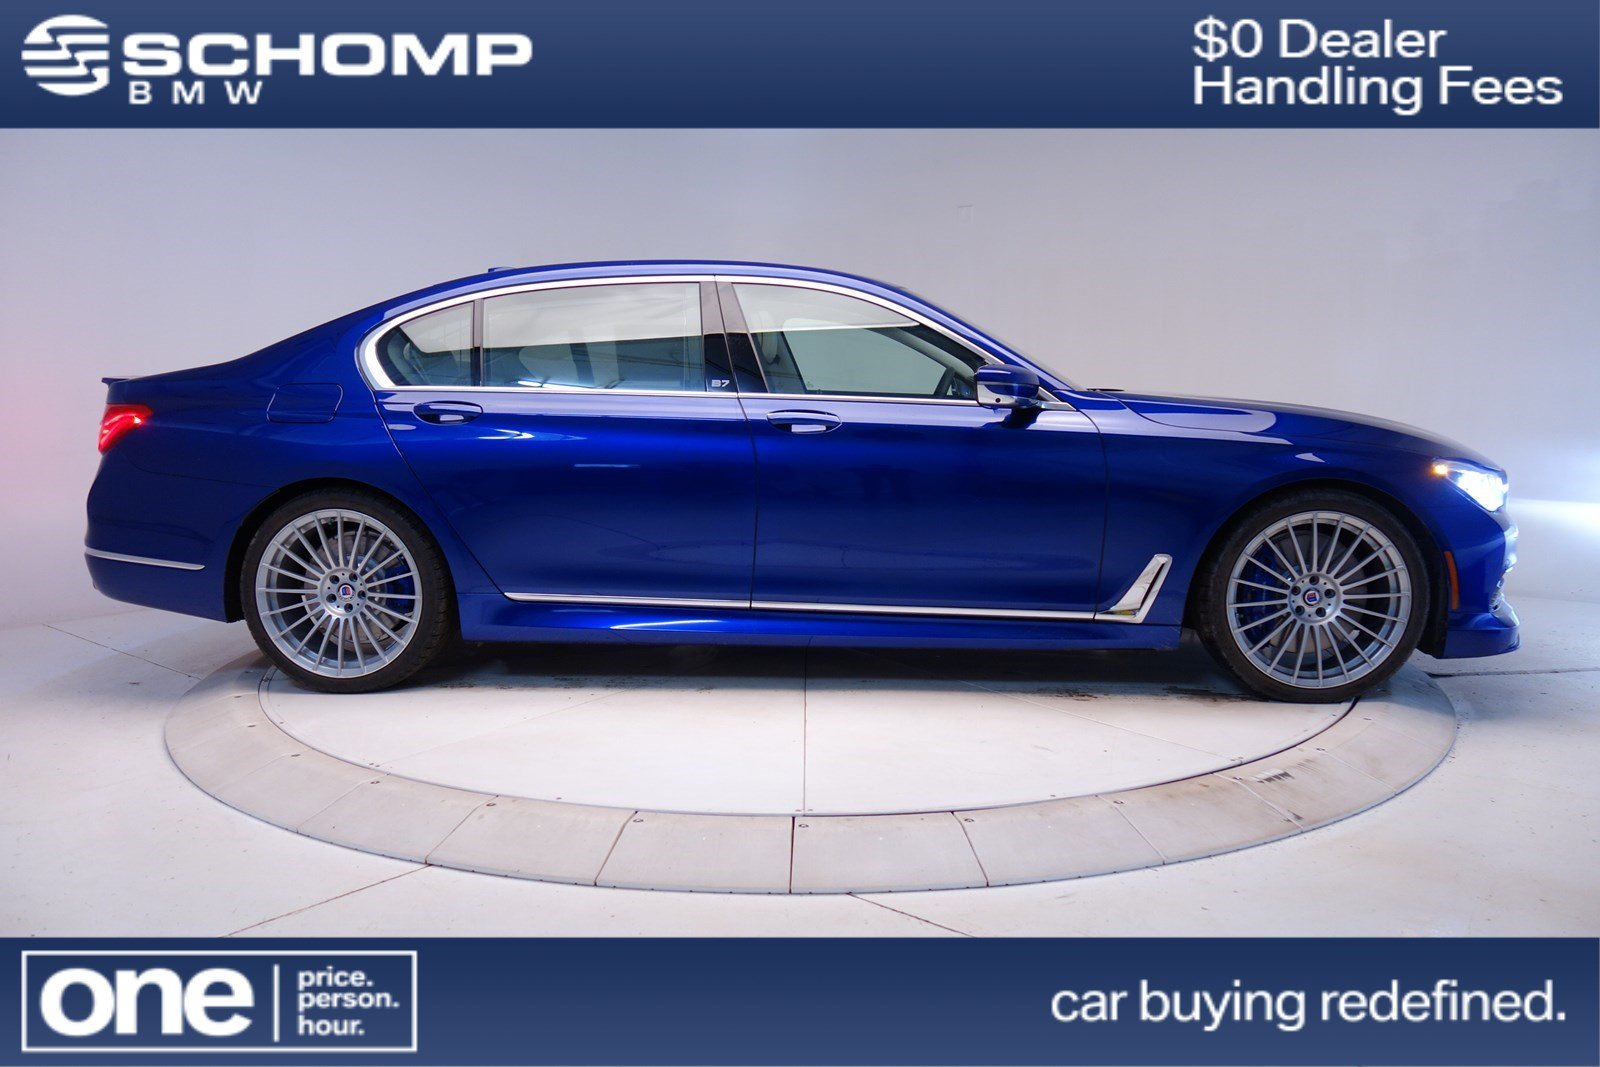 New BMW Series ALPINA B XDrive Sedan Dr Car In Highlands - Alpina bmw